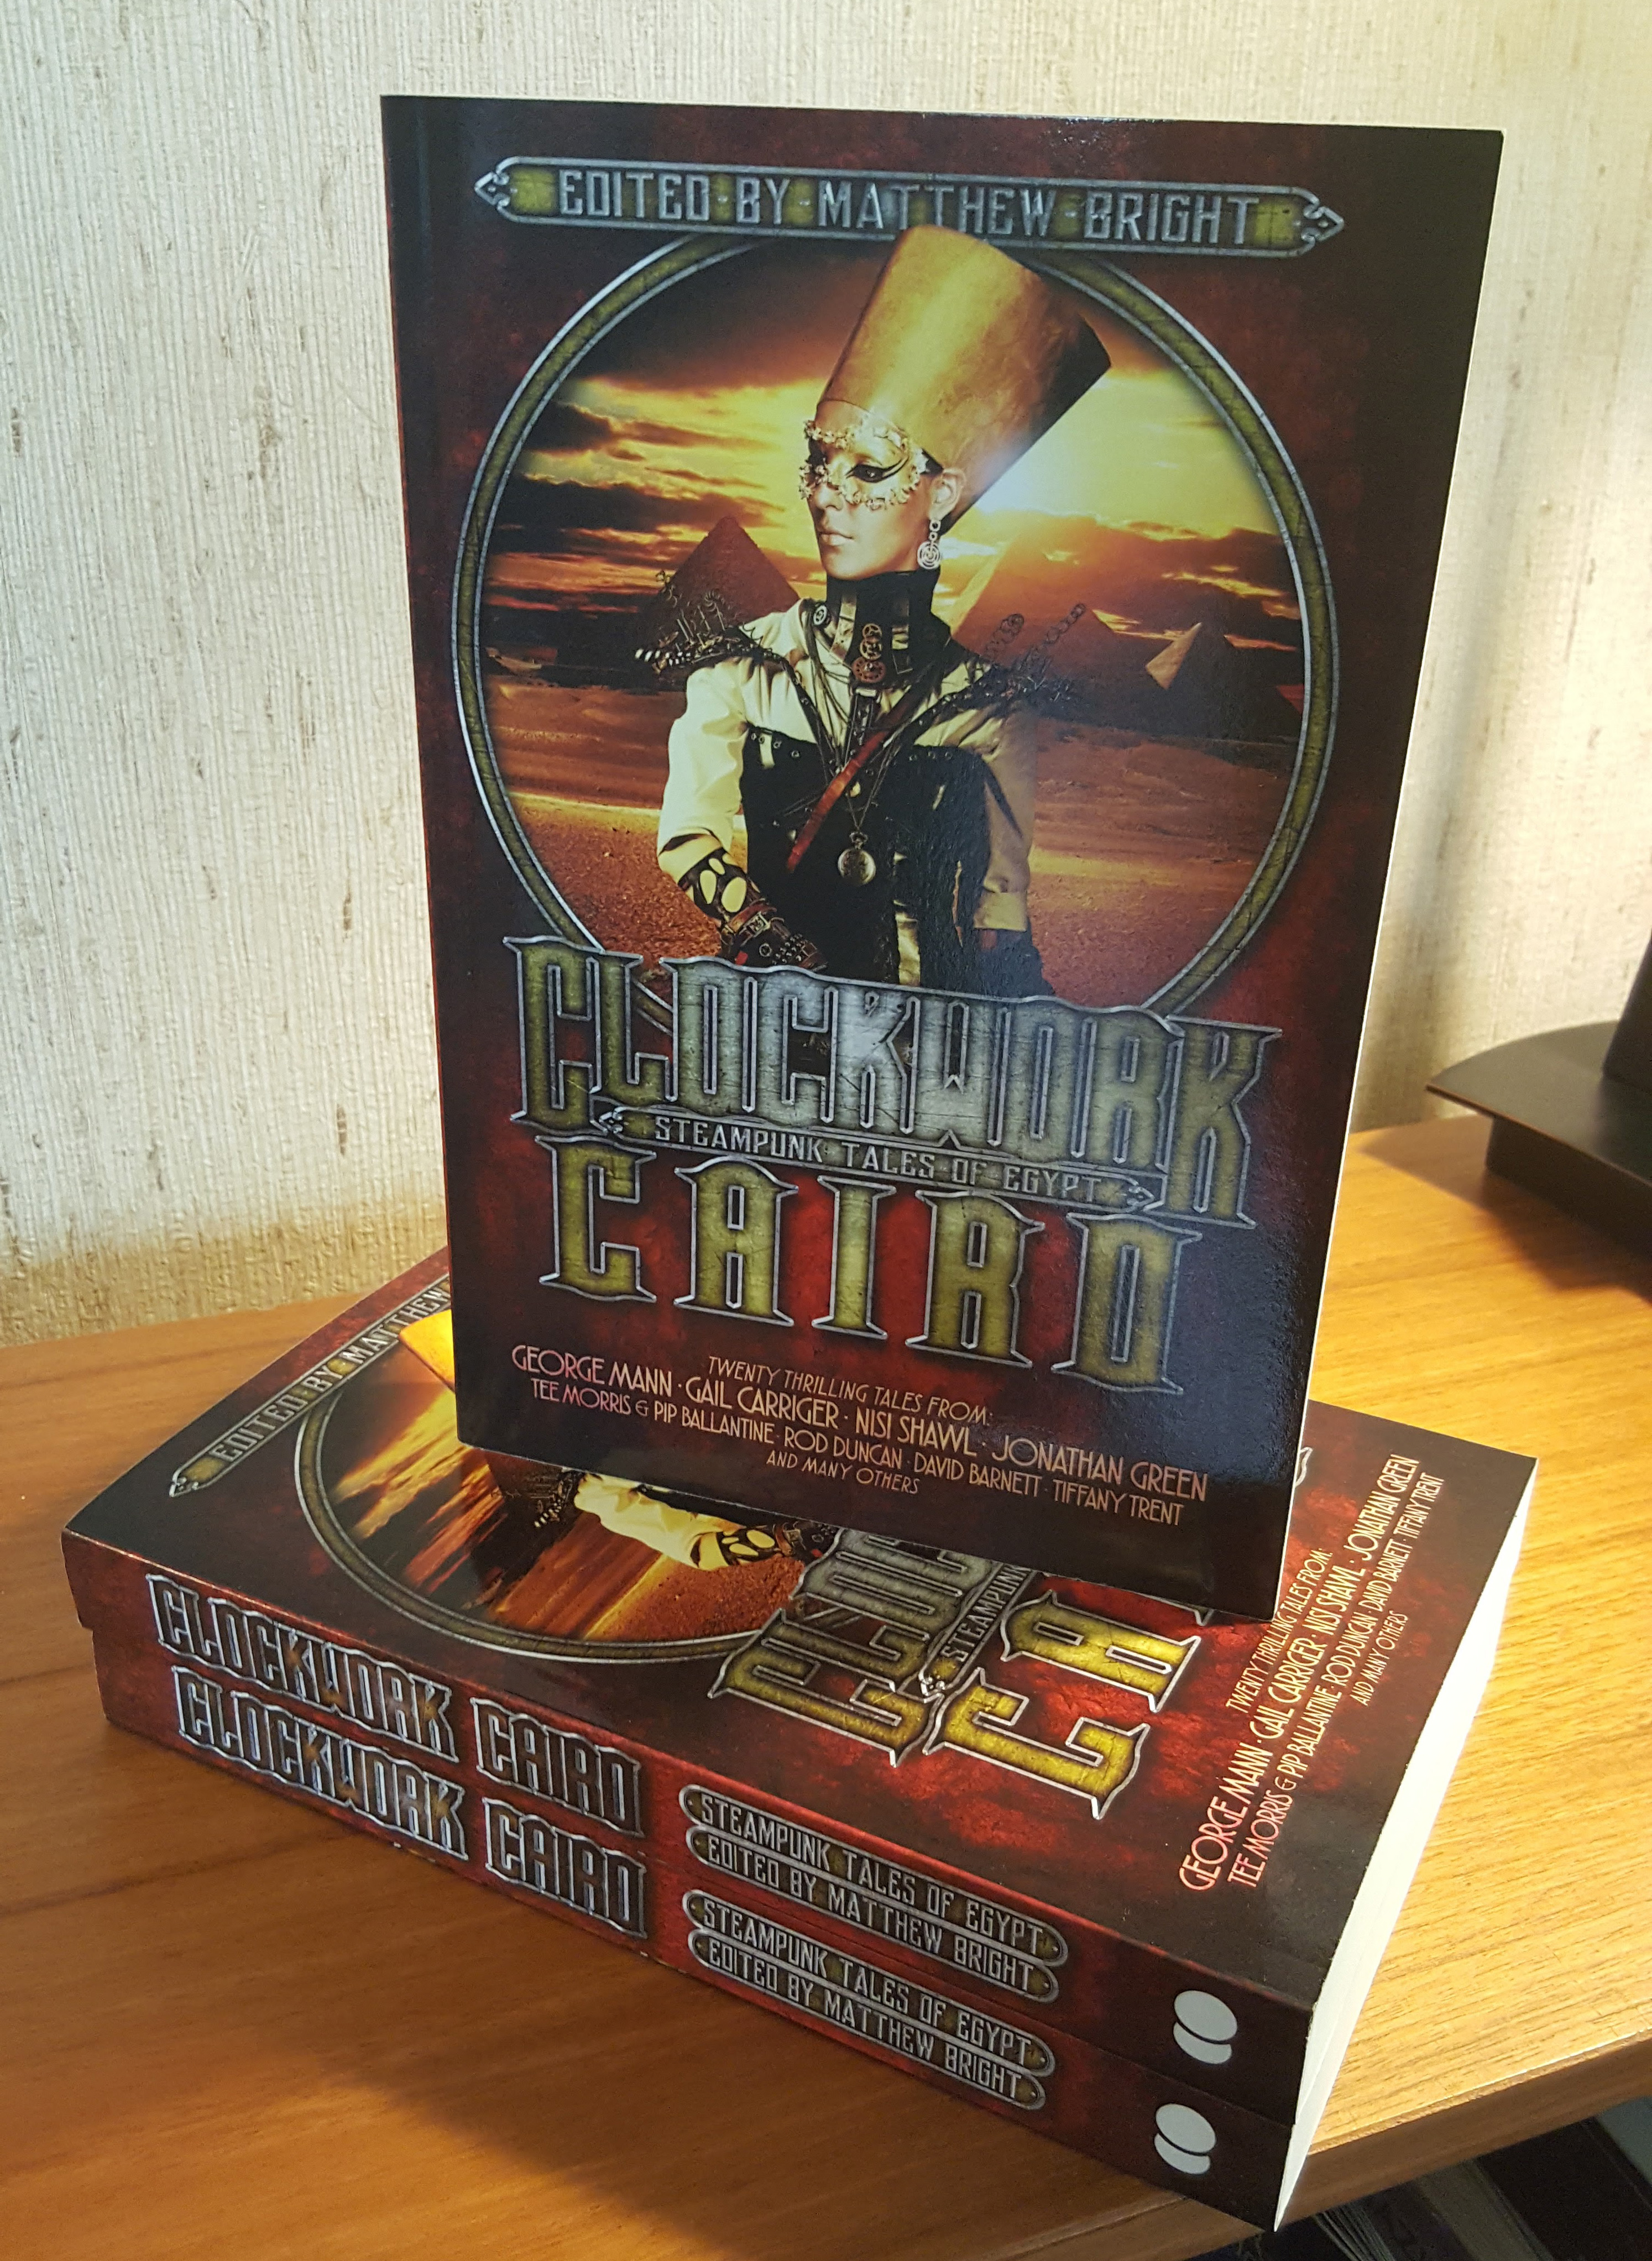 A stack of Clockwork cairo books